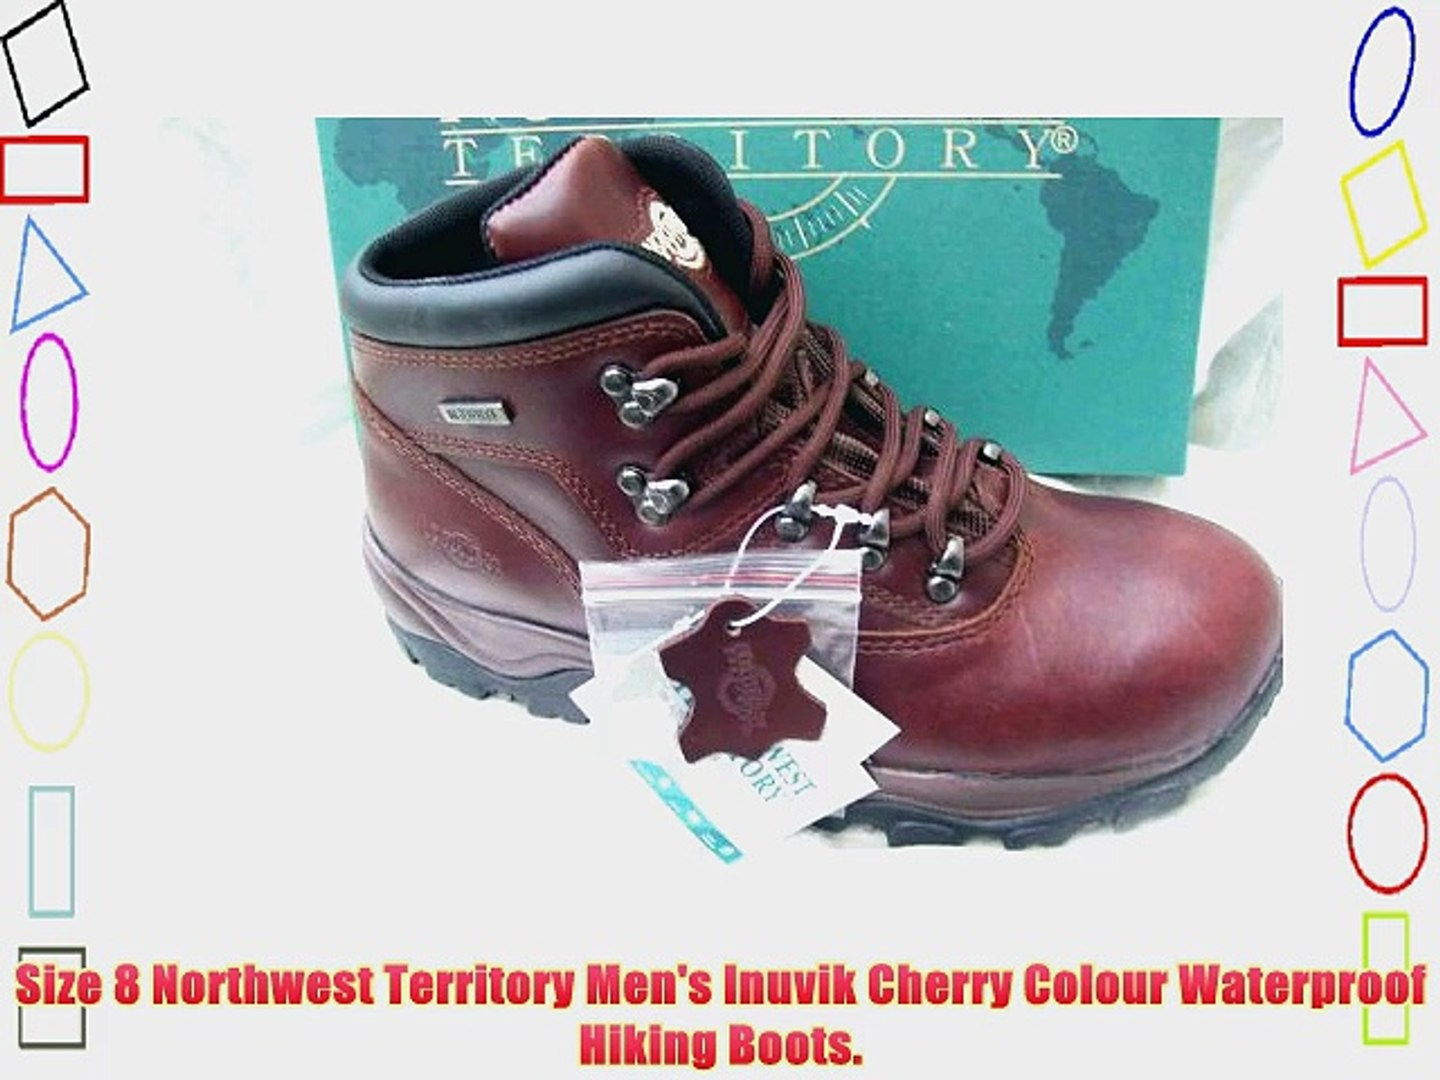 27701d24cc1 Size 8 Northwest Territory Men's Inuvik Cherry Colour Waterproof Hiking  Boots.